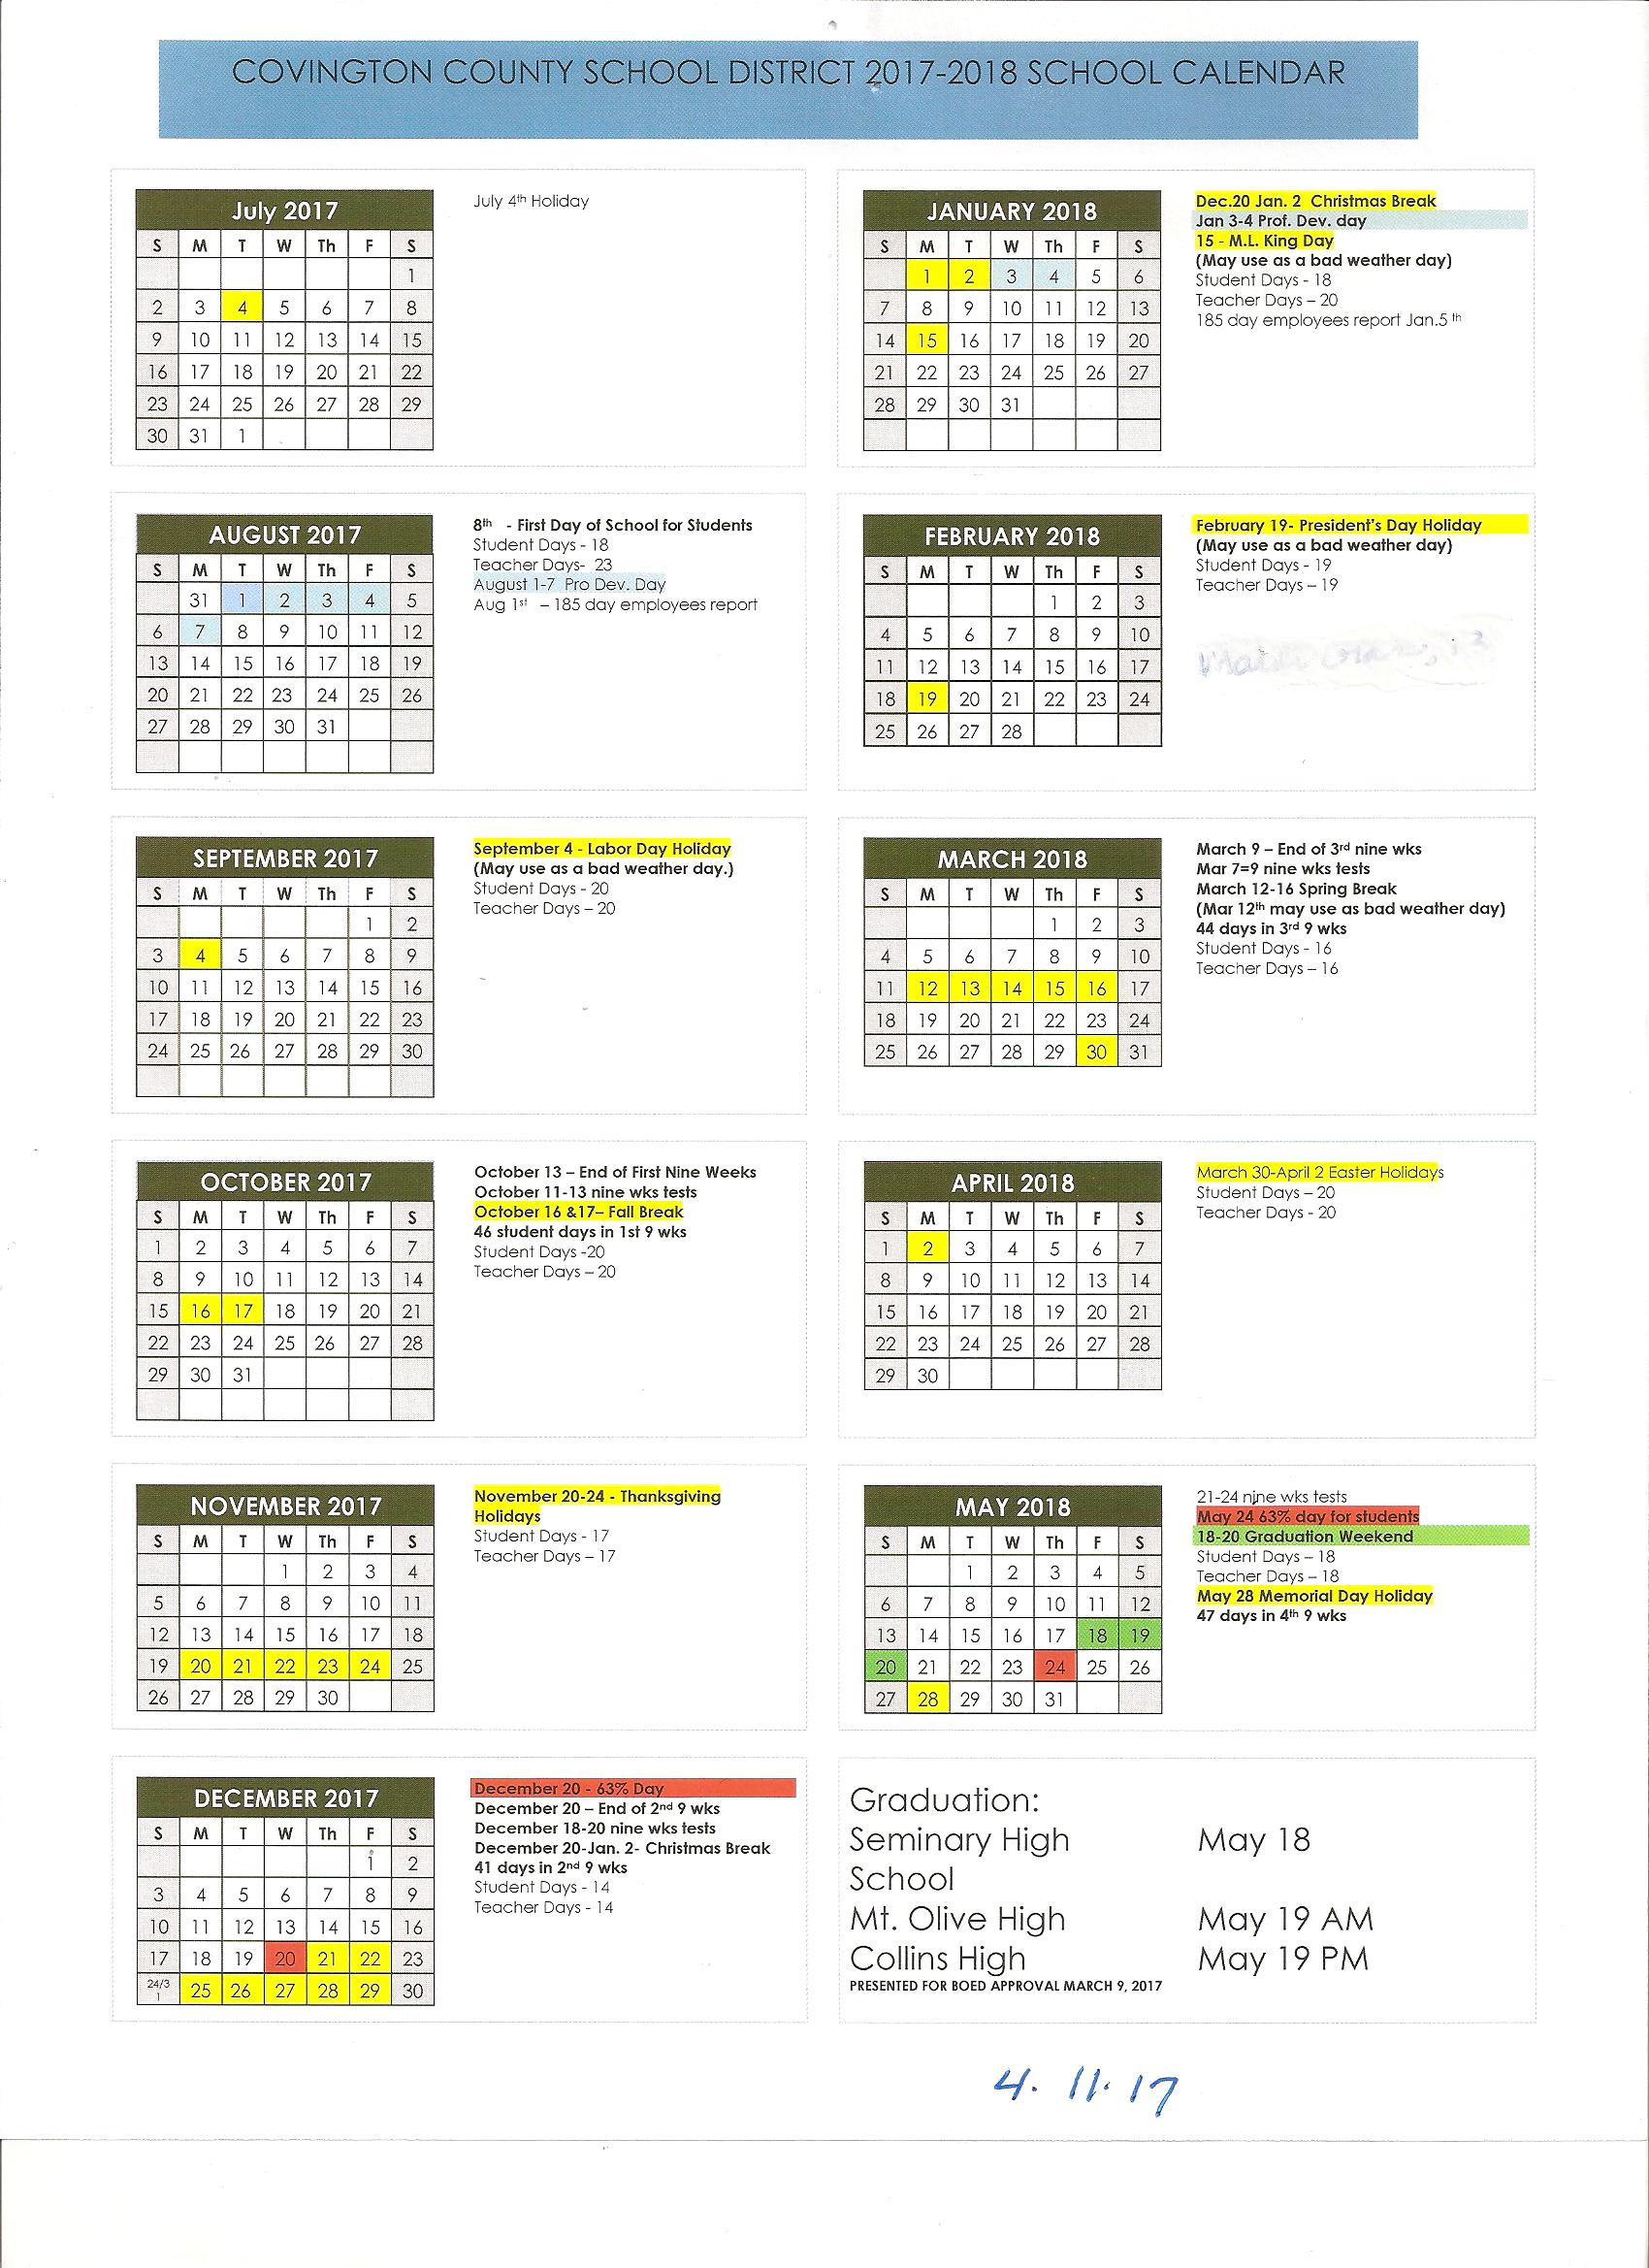 Ccsd Calendar For 2017 2018 Covington County School District